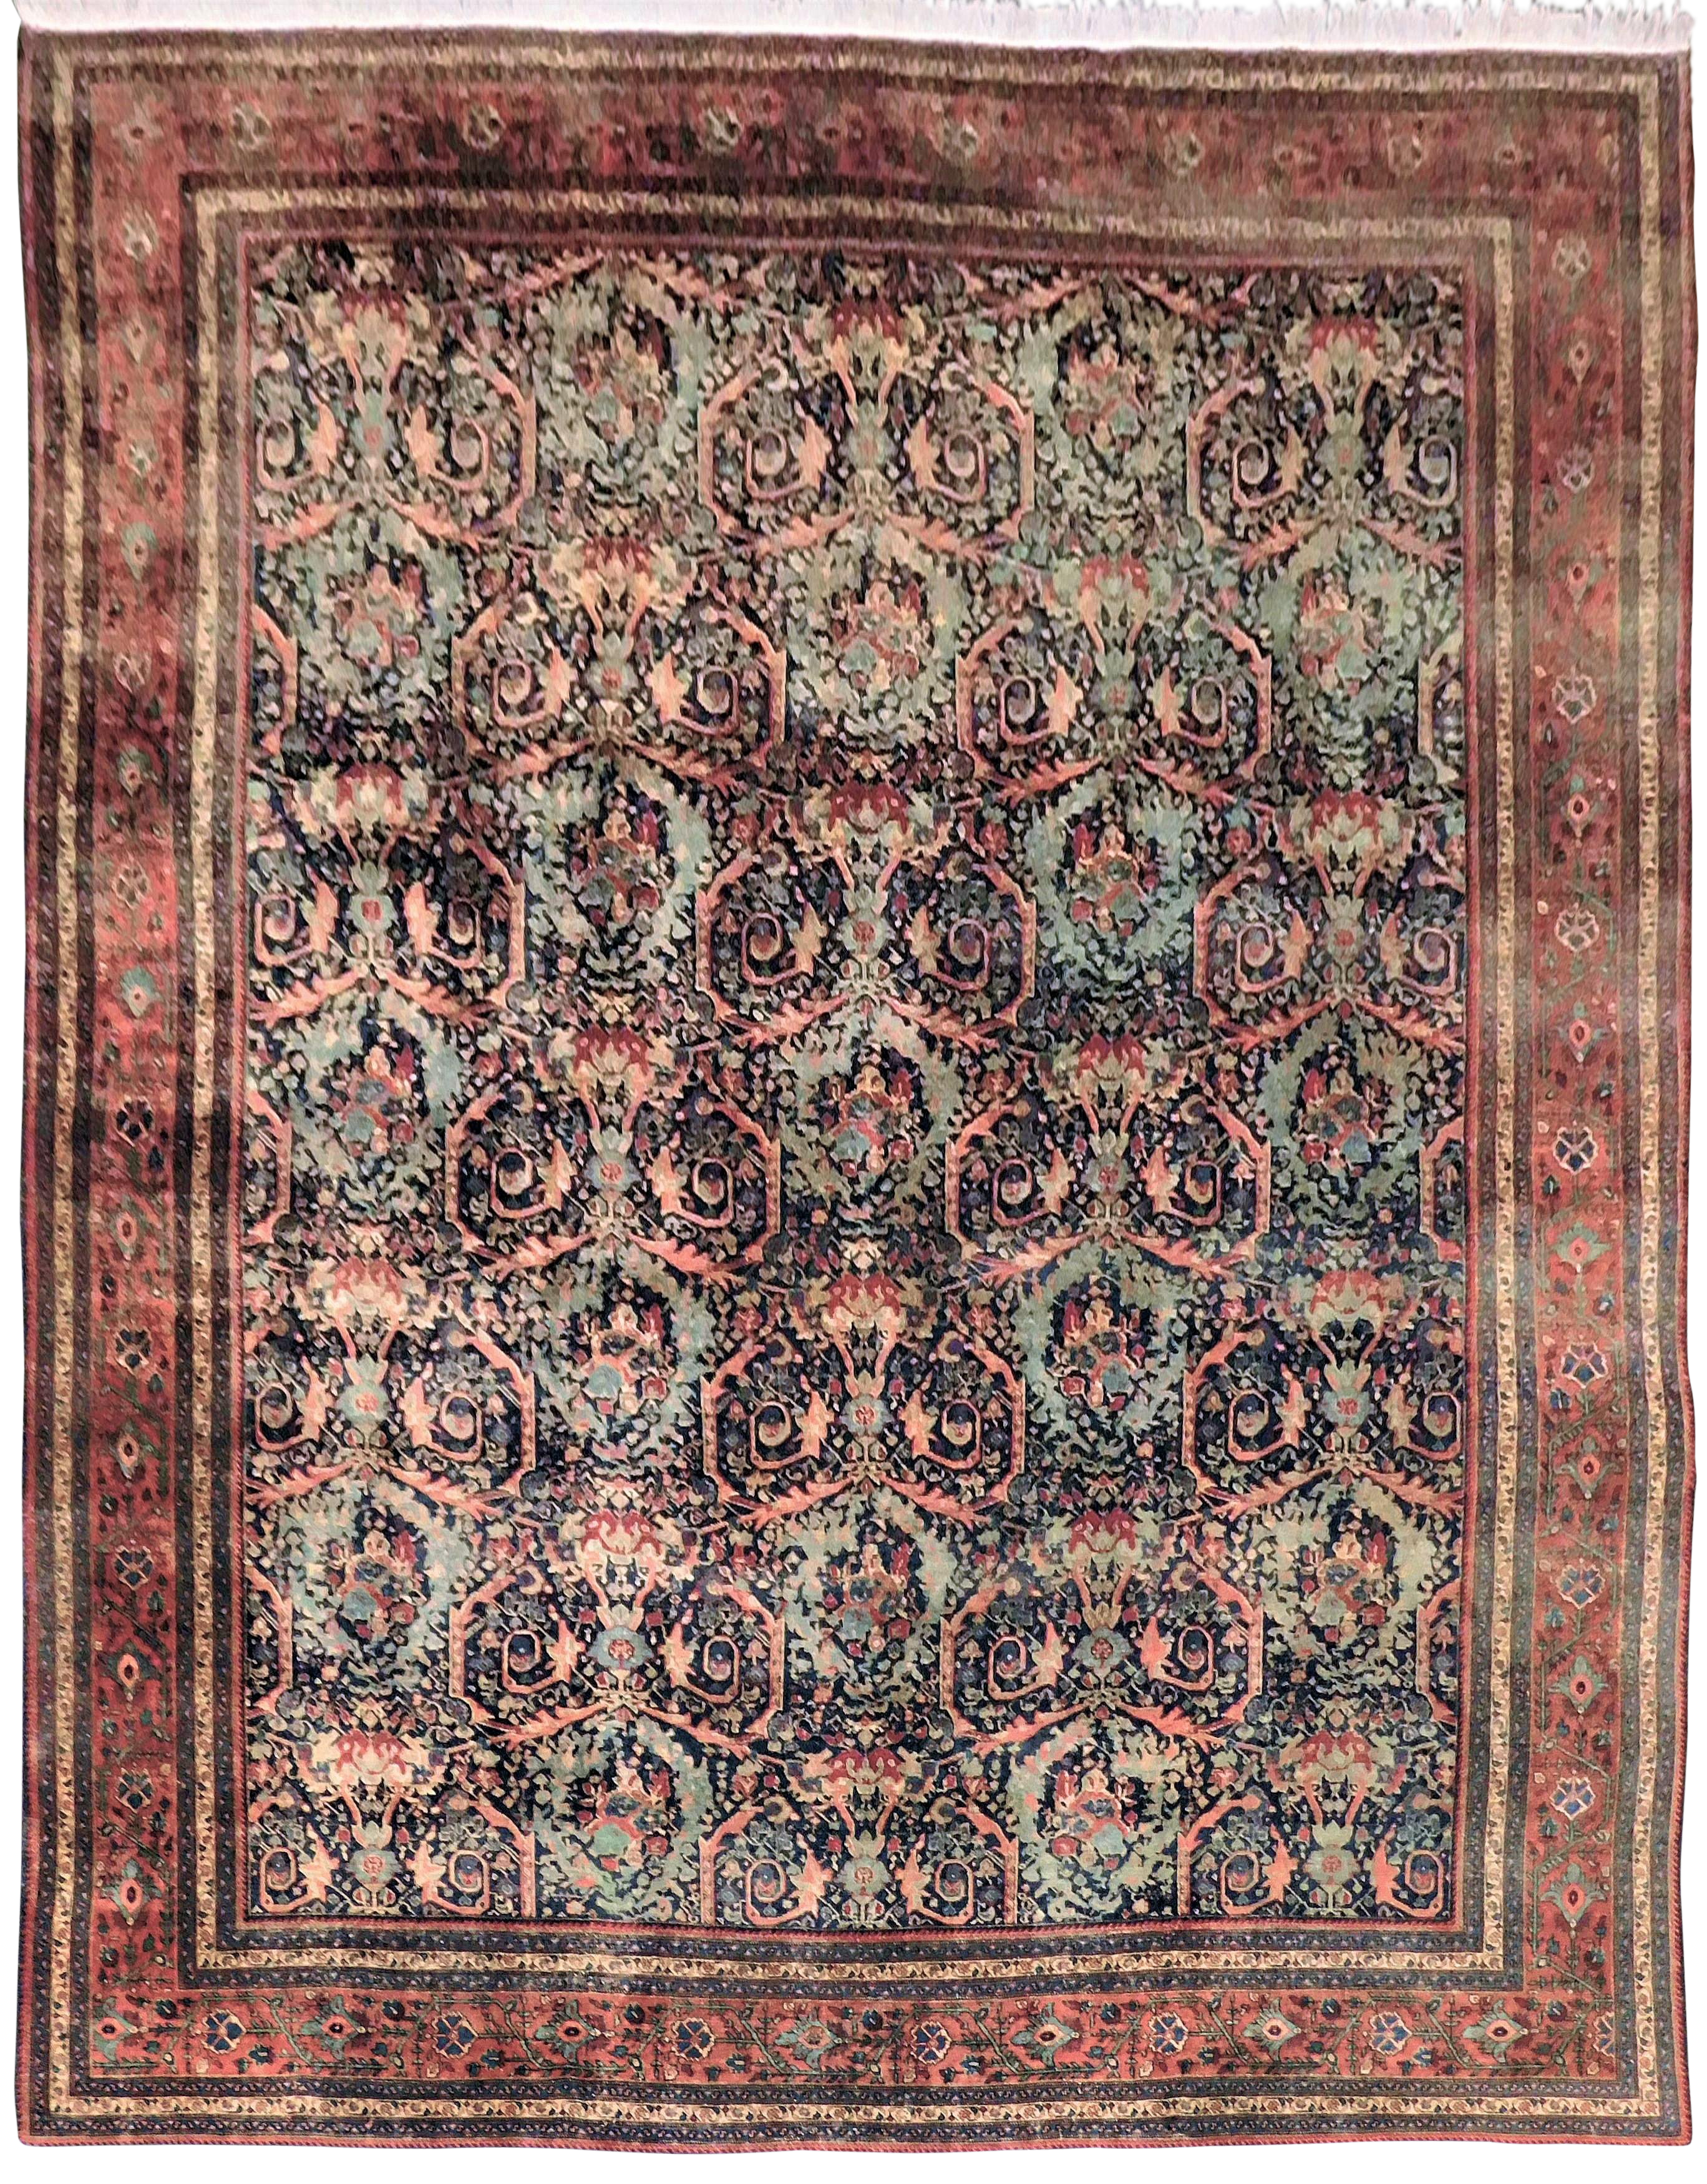 1920s Vintage Hand Knotted Persian Rug 11 14